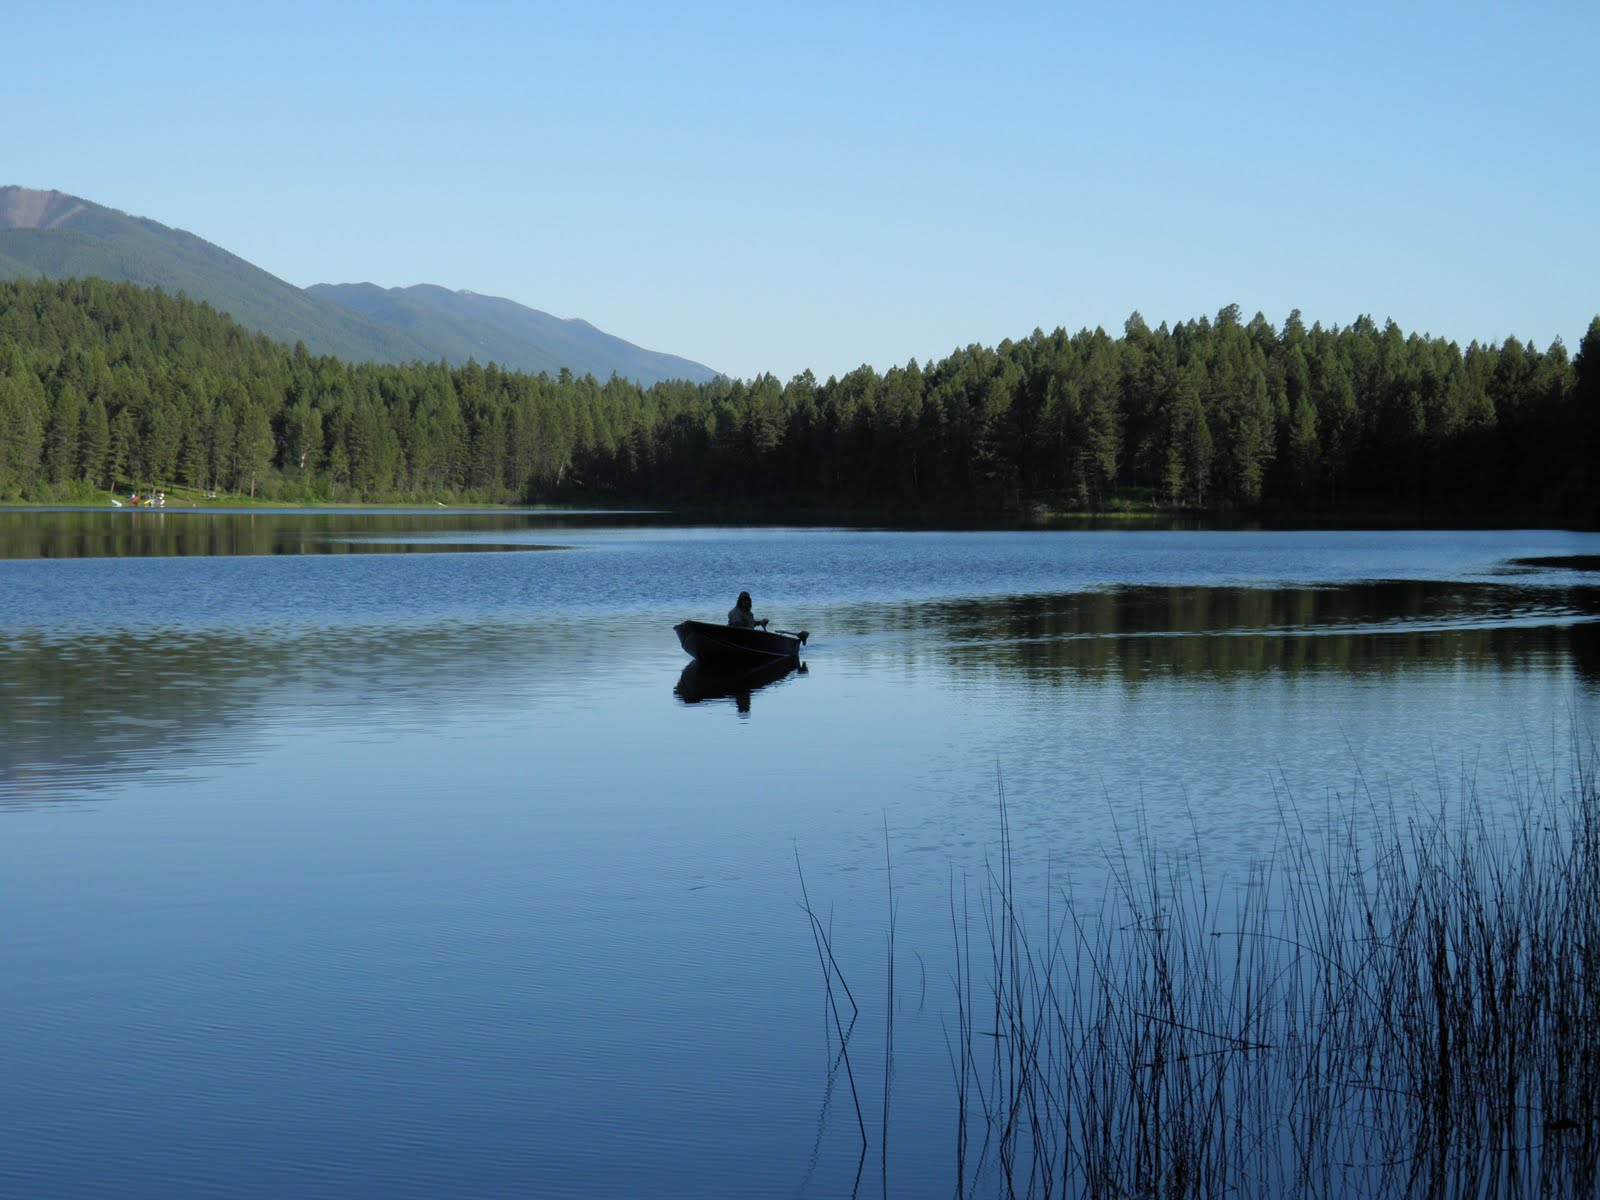 buddhist single men in loon lake Median gross rent in loon lake, wa in 2016: $577 housing units in loon  2,368 single-parent households (731 men,  cars and other vehicles available in loon .